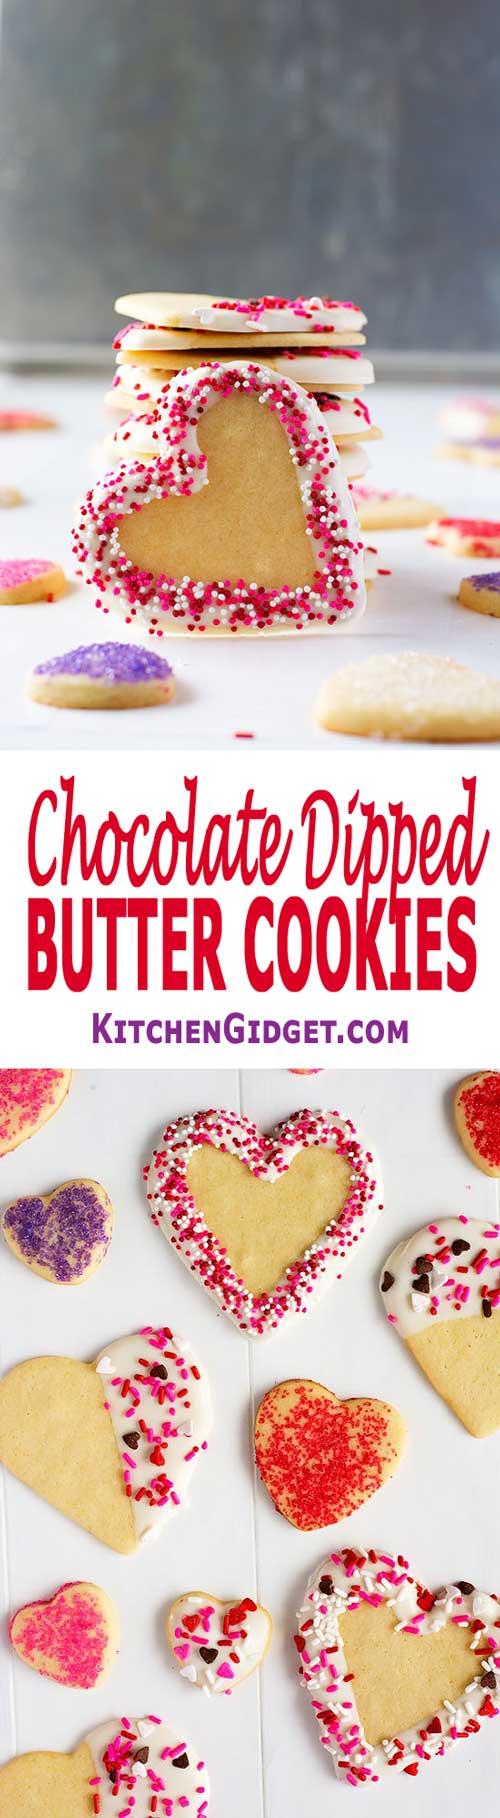 Chocolate Dipped Butter Cookies: crispy Land O Lakes recipe melt in your mouth cut out cookies with sprinkles! Perfect for Valentine's Day or Christmas! #cookies #cookierecipes #valentines #valentinesday